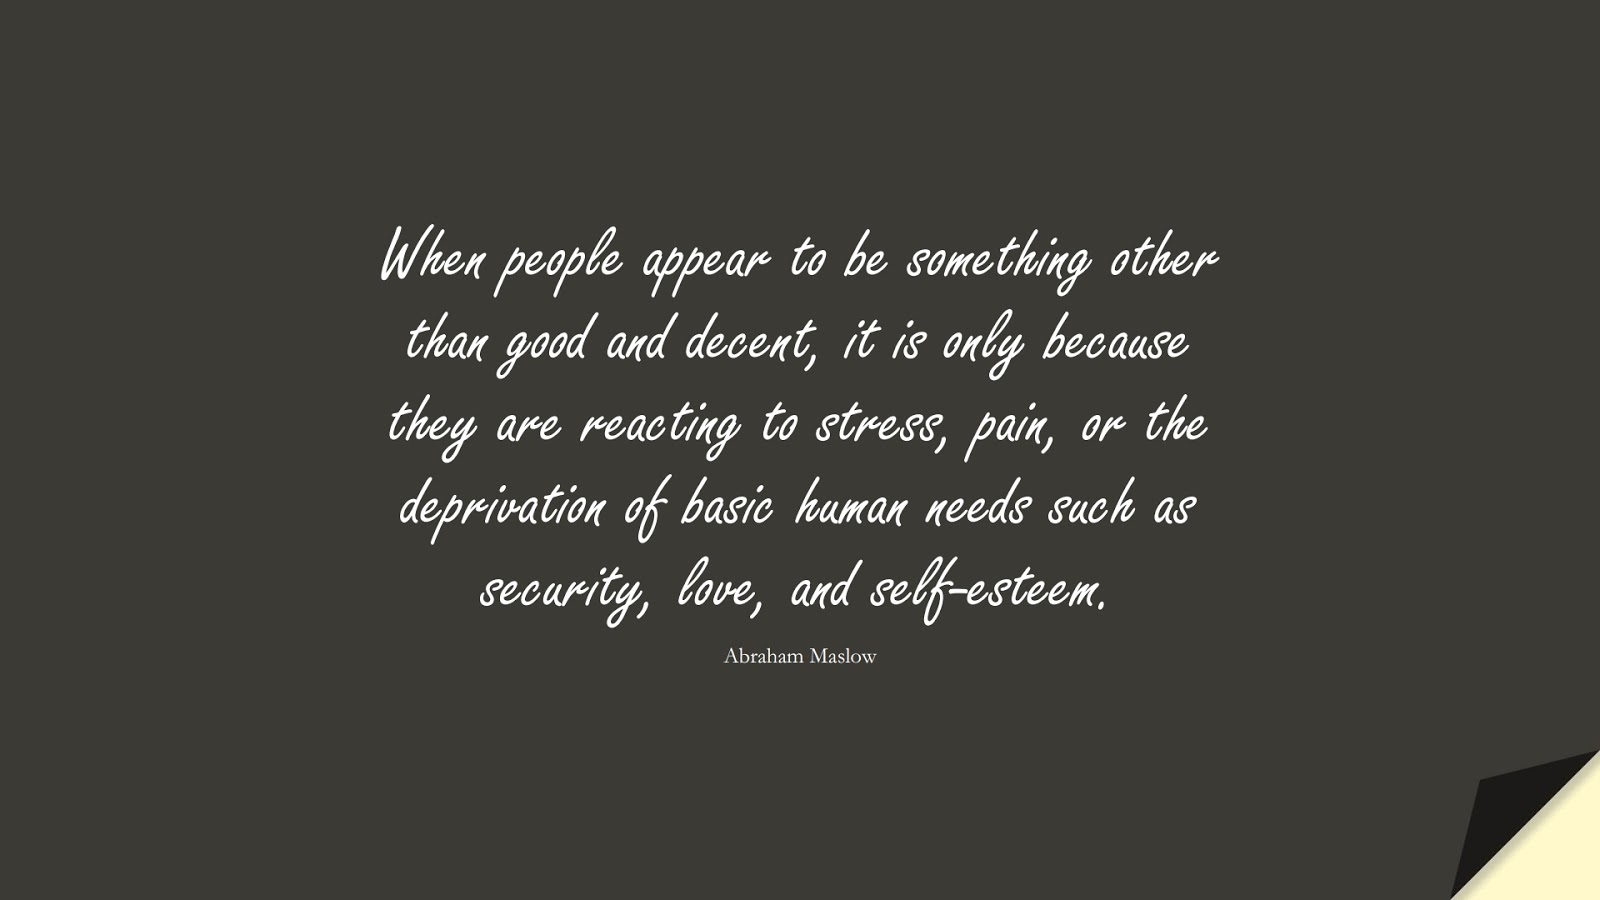 When people appear to be something other than good and decent, it is only because they are reacting to stress, pain, or the deprivation of basic human needs such as security, love, and self-esteem. (Abraham Maslow);  #SelfEsteemQuotes